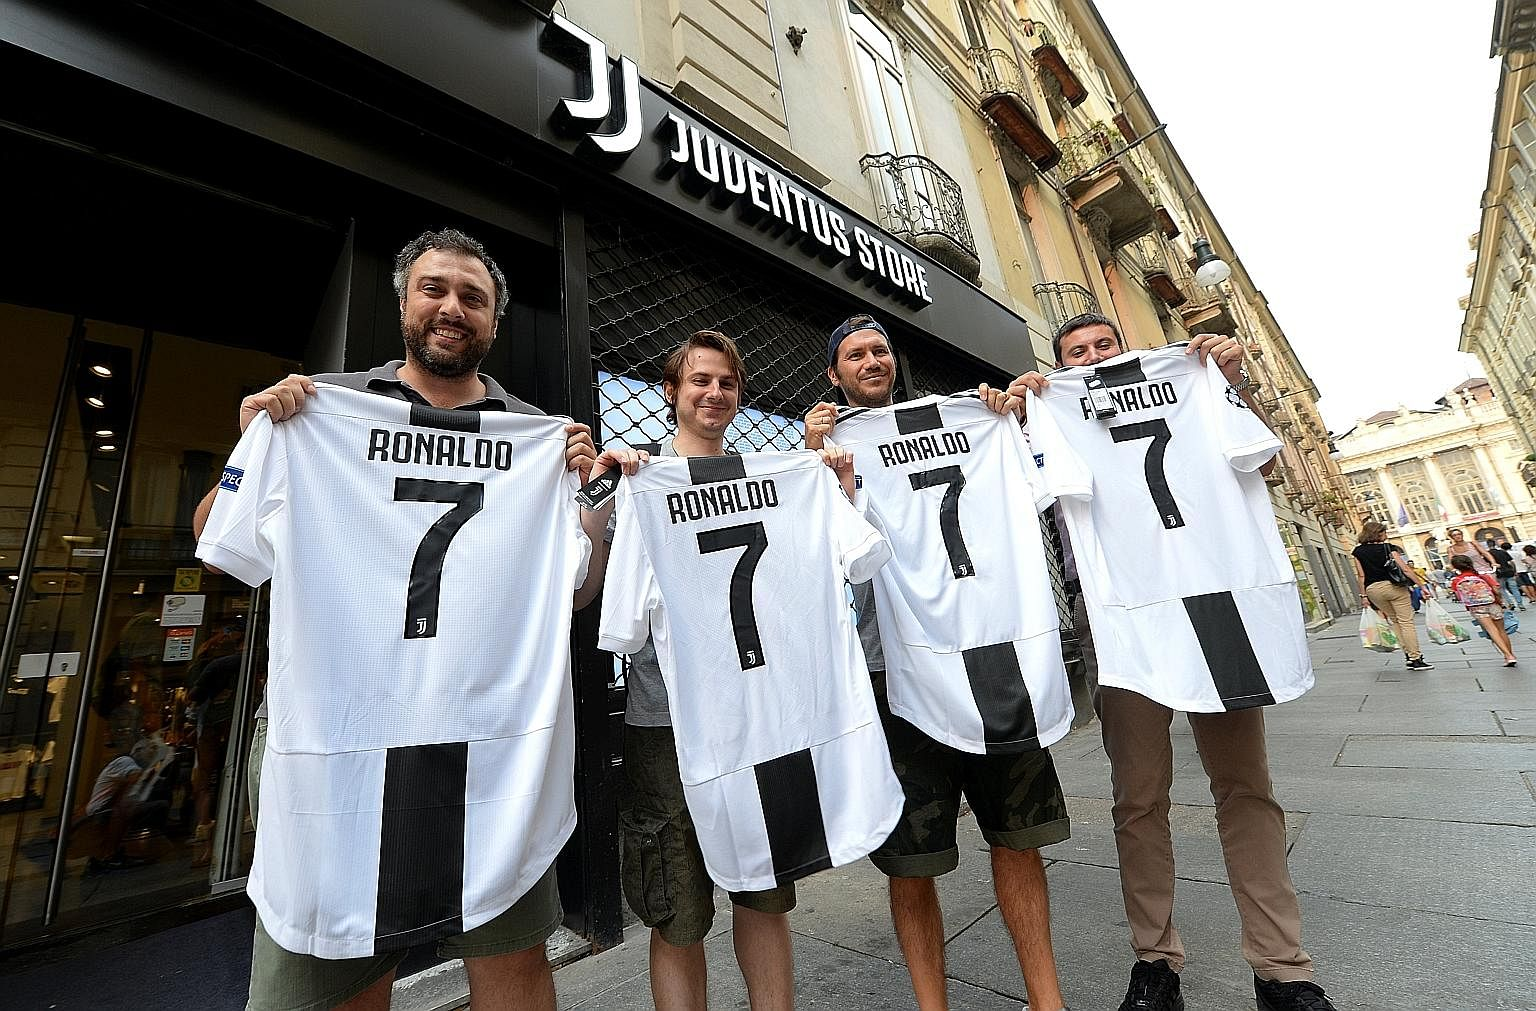 Juventus supporters posing with club shirts that have been adorned with the name and number of Cristiano Ronaldo after his €100 million (S$160 million) transfer from Real Madrid to the Italian champions on Tuesday.